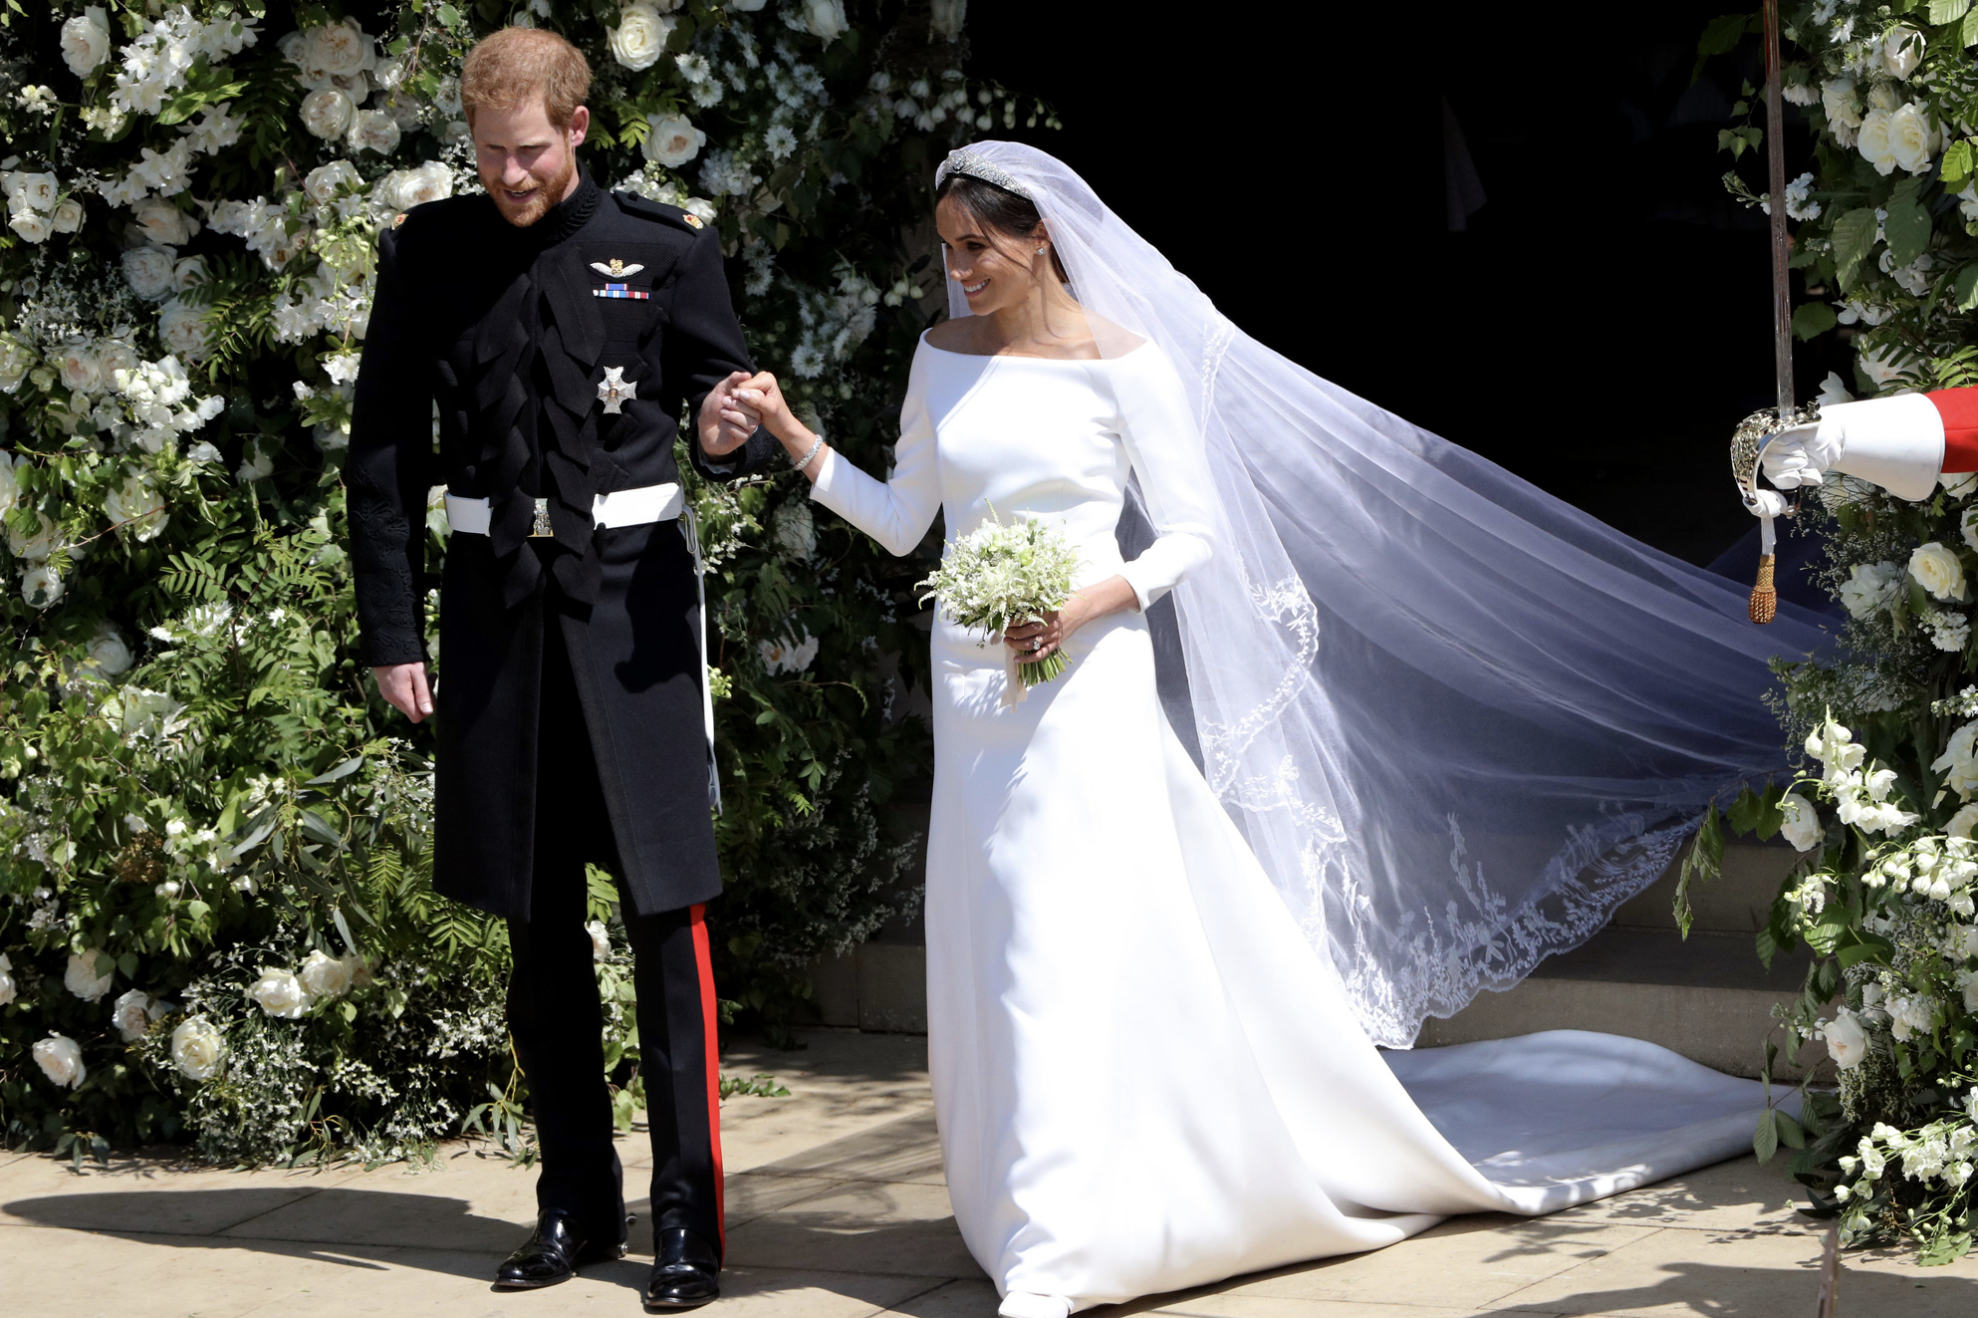 The Wedding Costumes of Prince Harry and Meghan Markle